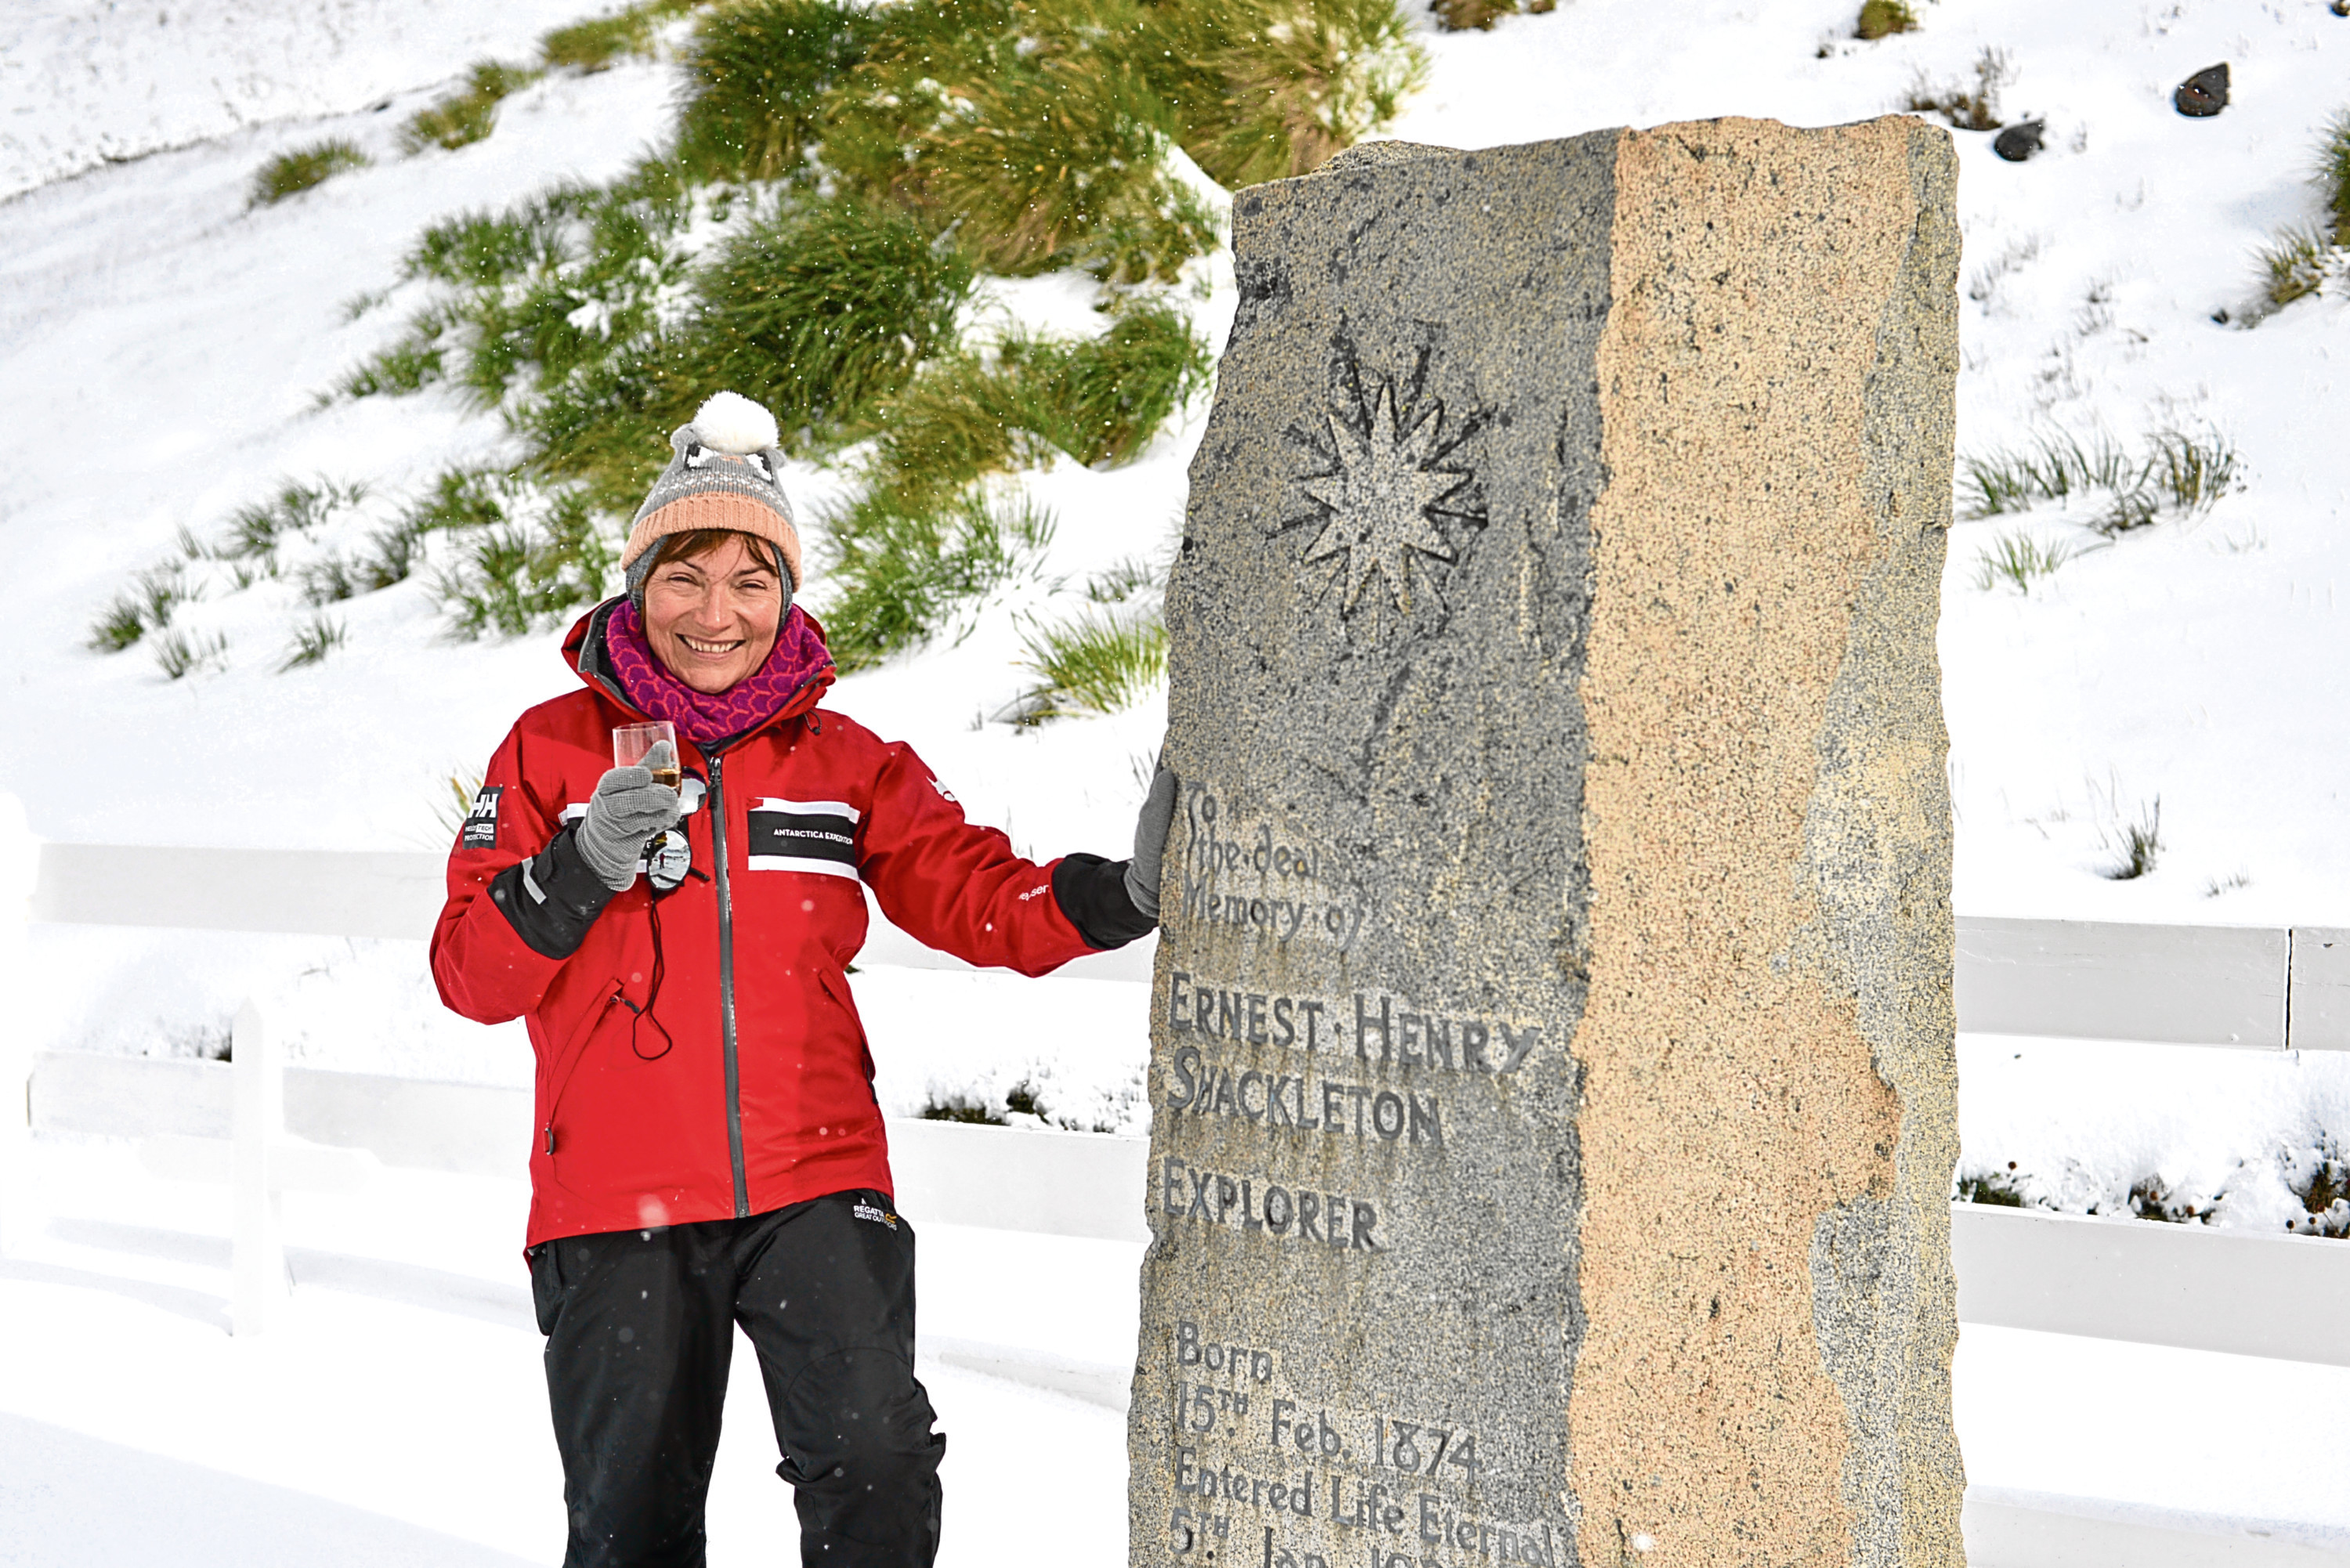 Lorraine Kelly visiting the grave of her hero Sir Ernest Shackleton on an Antarctic trip of a lifetime